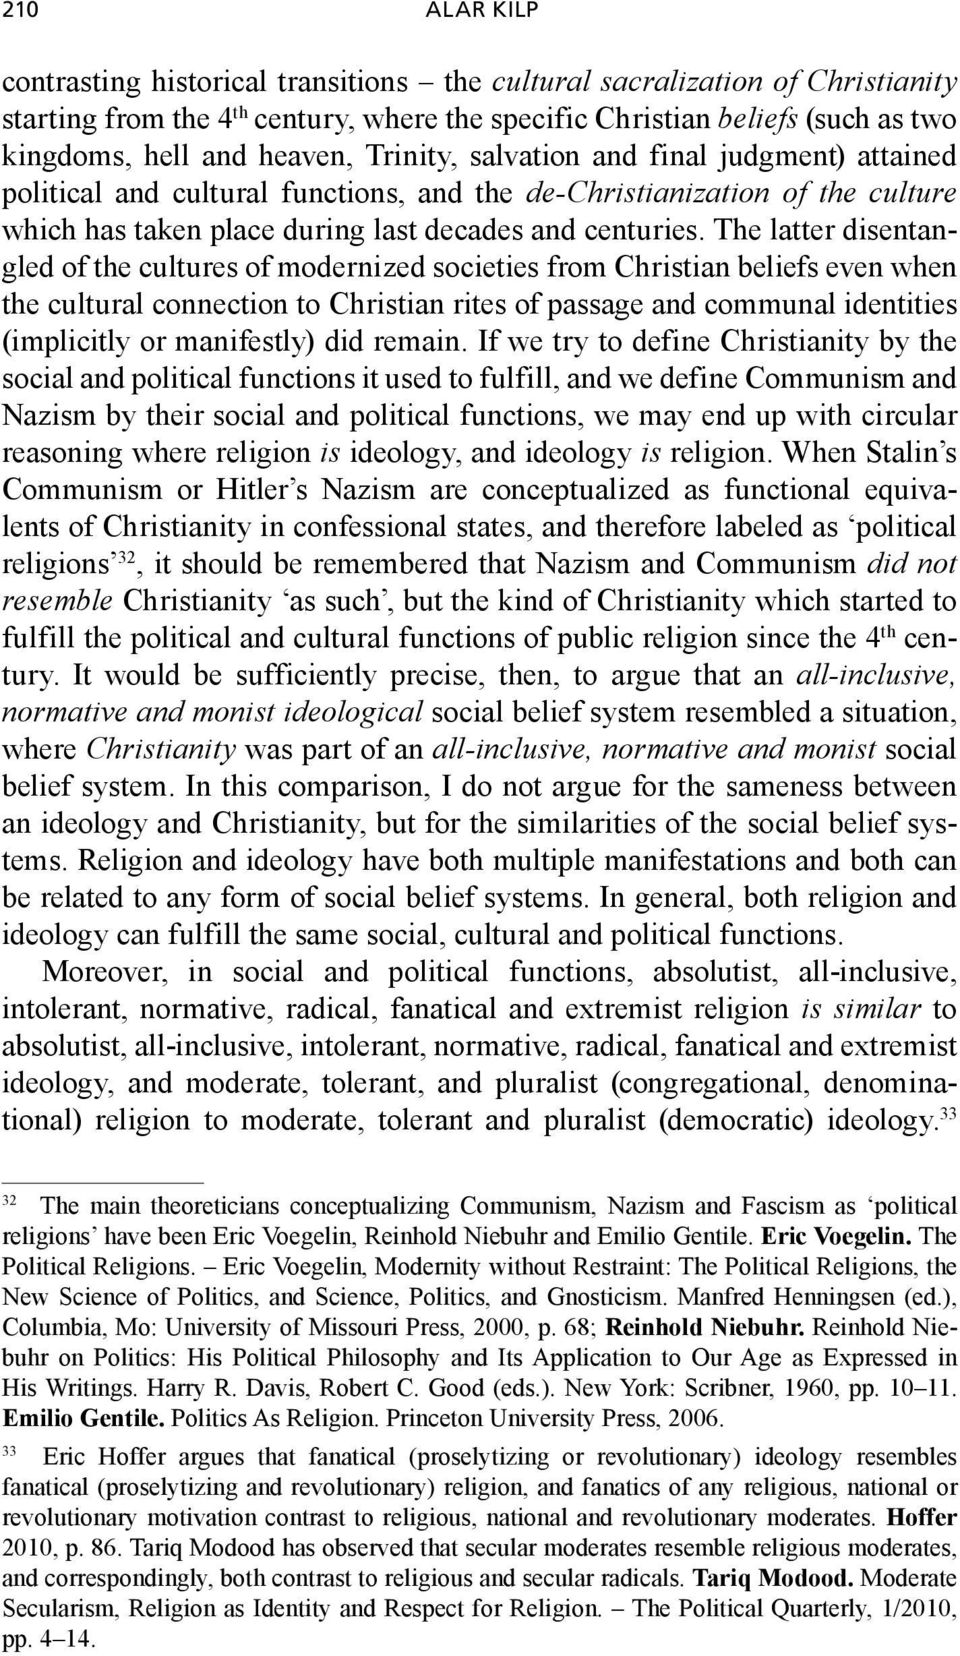 The latter disentangled of the cultures of modernized societies from Christian beliefs even when the cultural connection to Christian rites of passage and communal identities (implicitly or